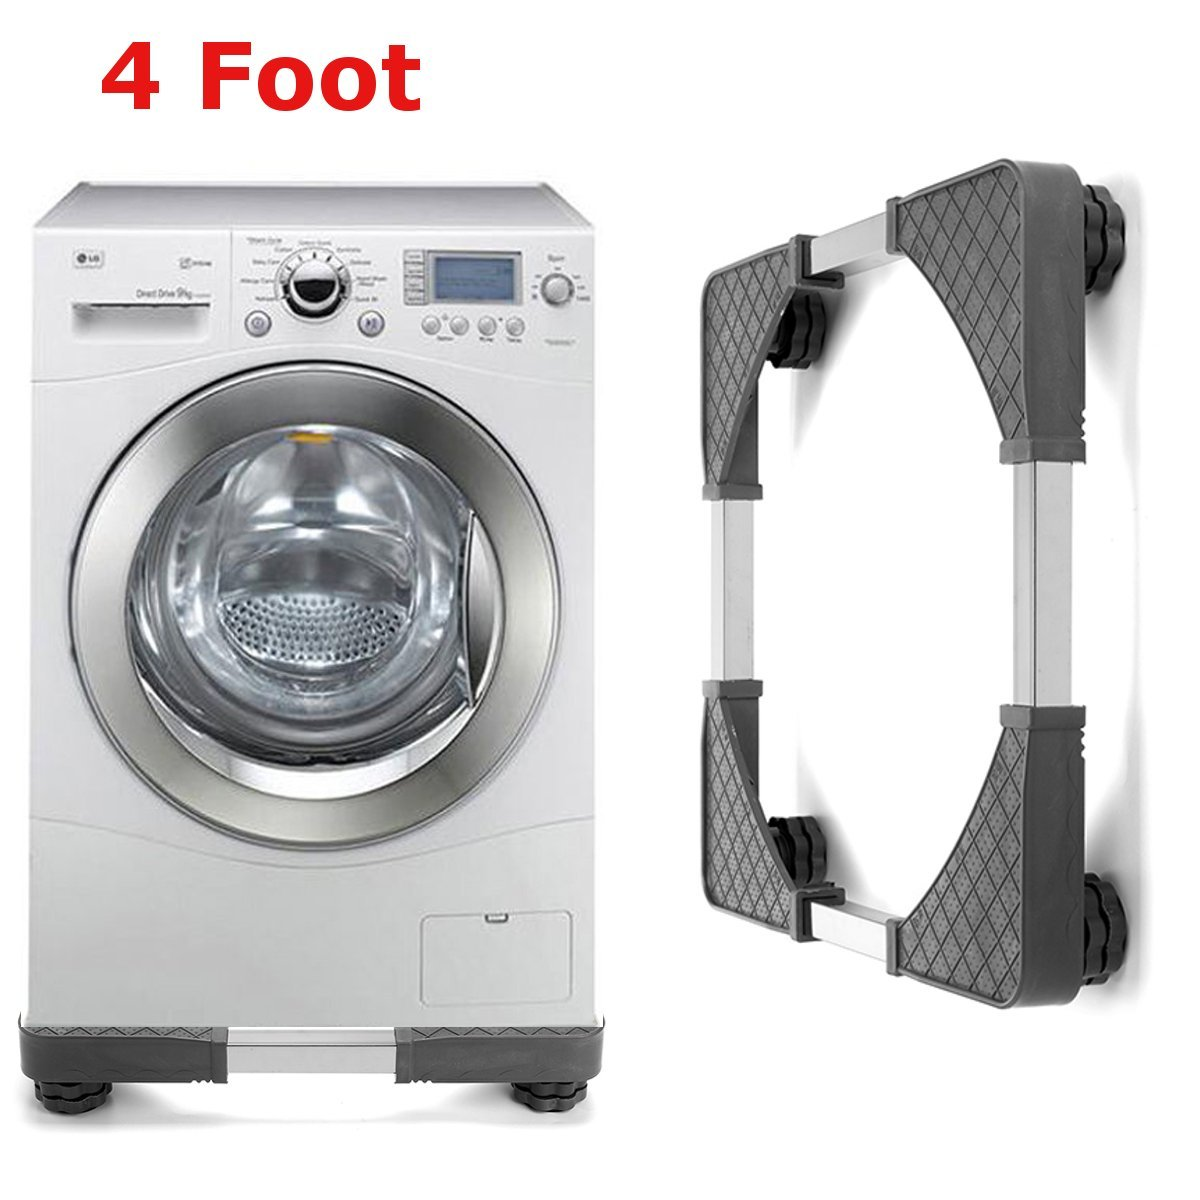 Vivona Hardware & Accessories Adjustable Undercarriage Bracket Base Stand for Washing Machine Refrigerator - (Size: 4)